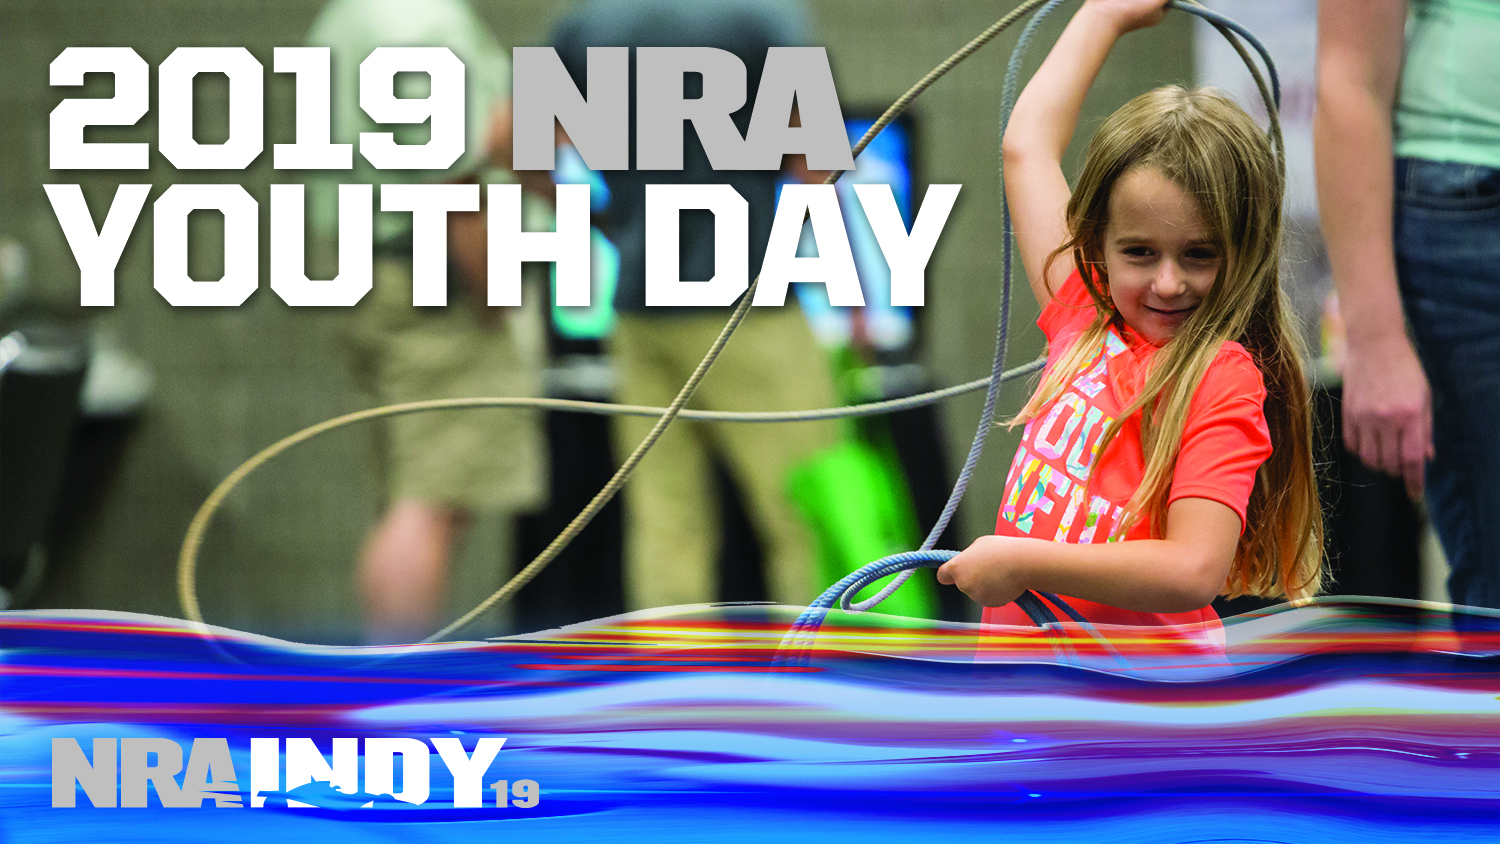 Join the Fun at NRA Youth Day in Indy!